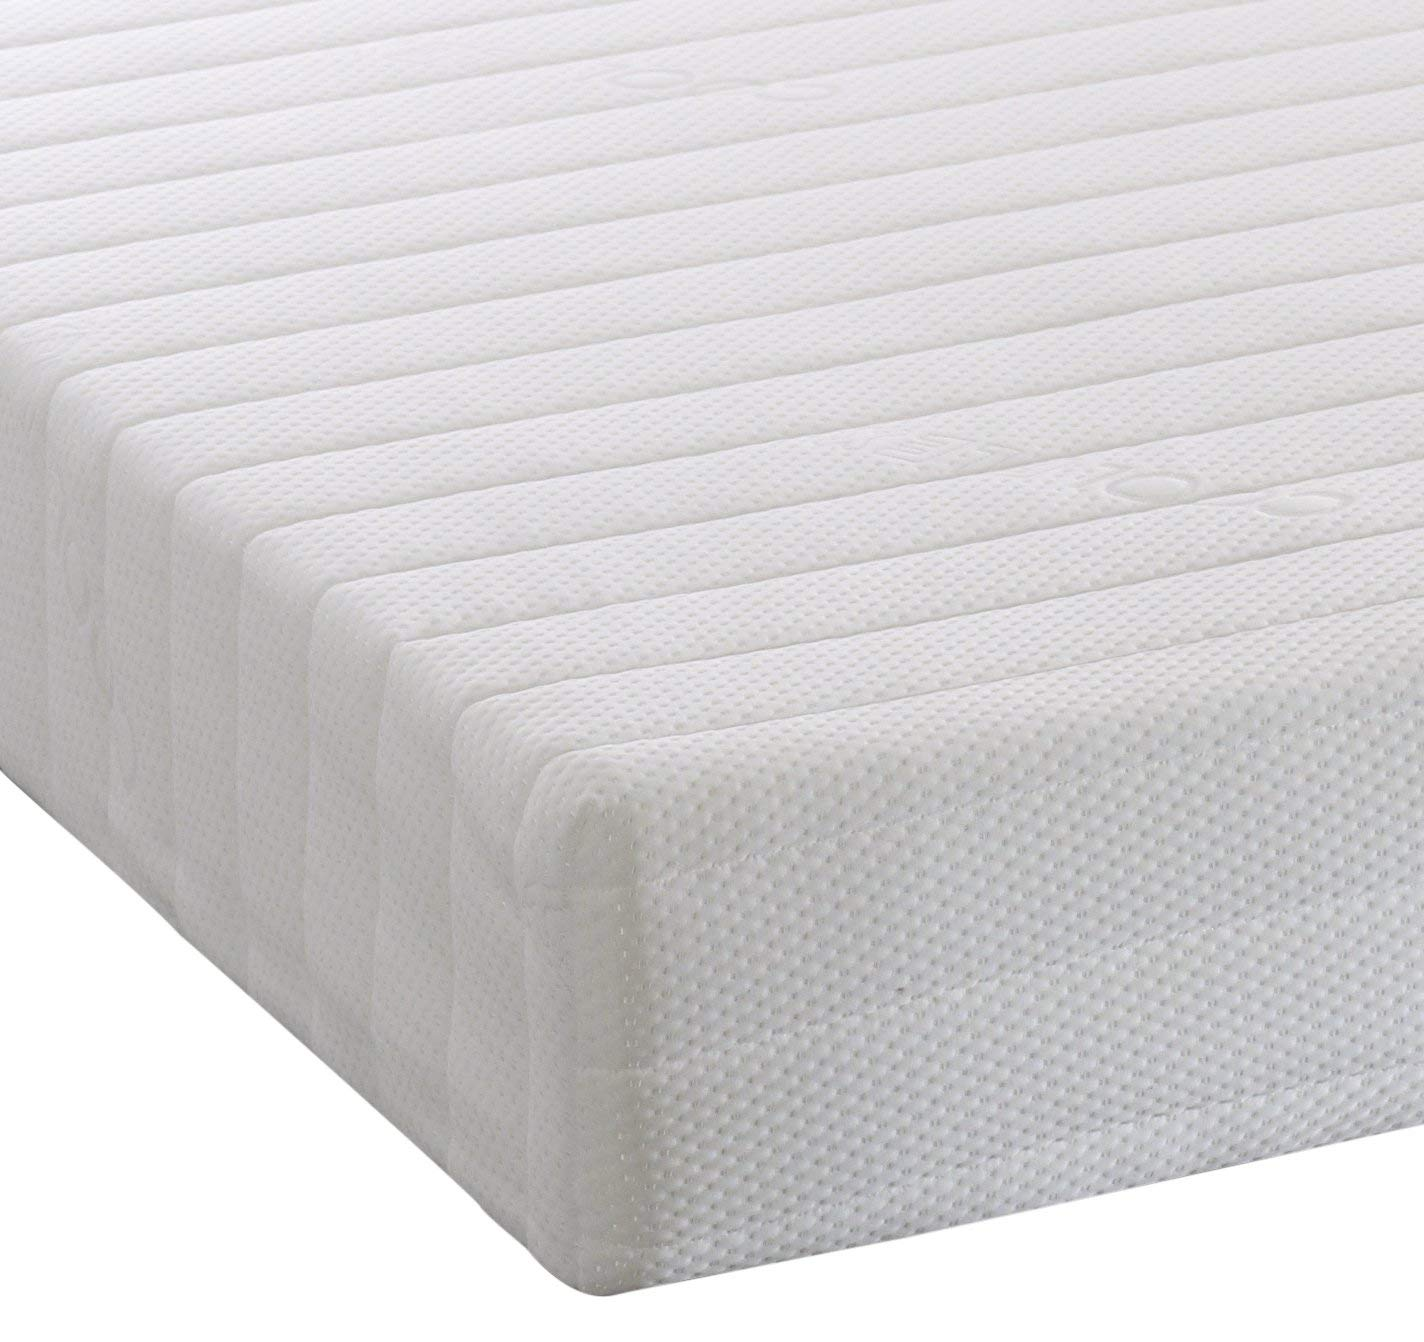 Visco Therapy Memory Foam Reflex 5 Zone Rolled Mattress Quilted Cover Pillows - Super King